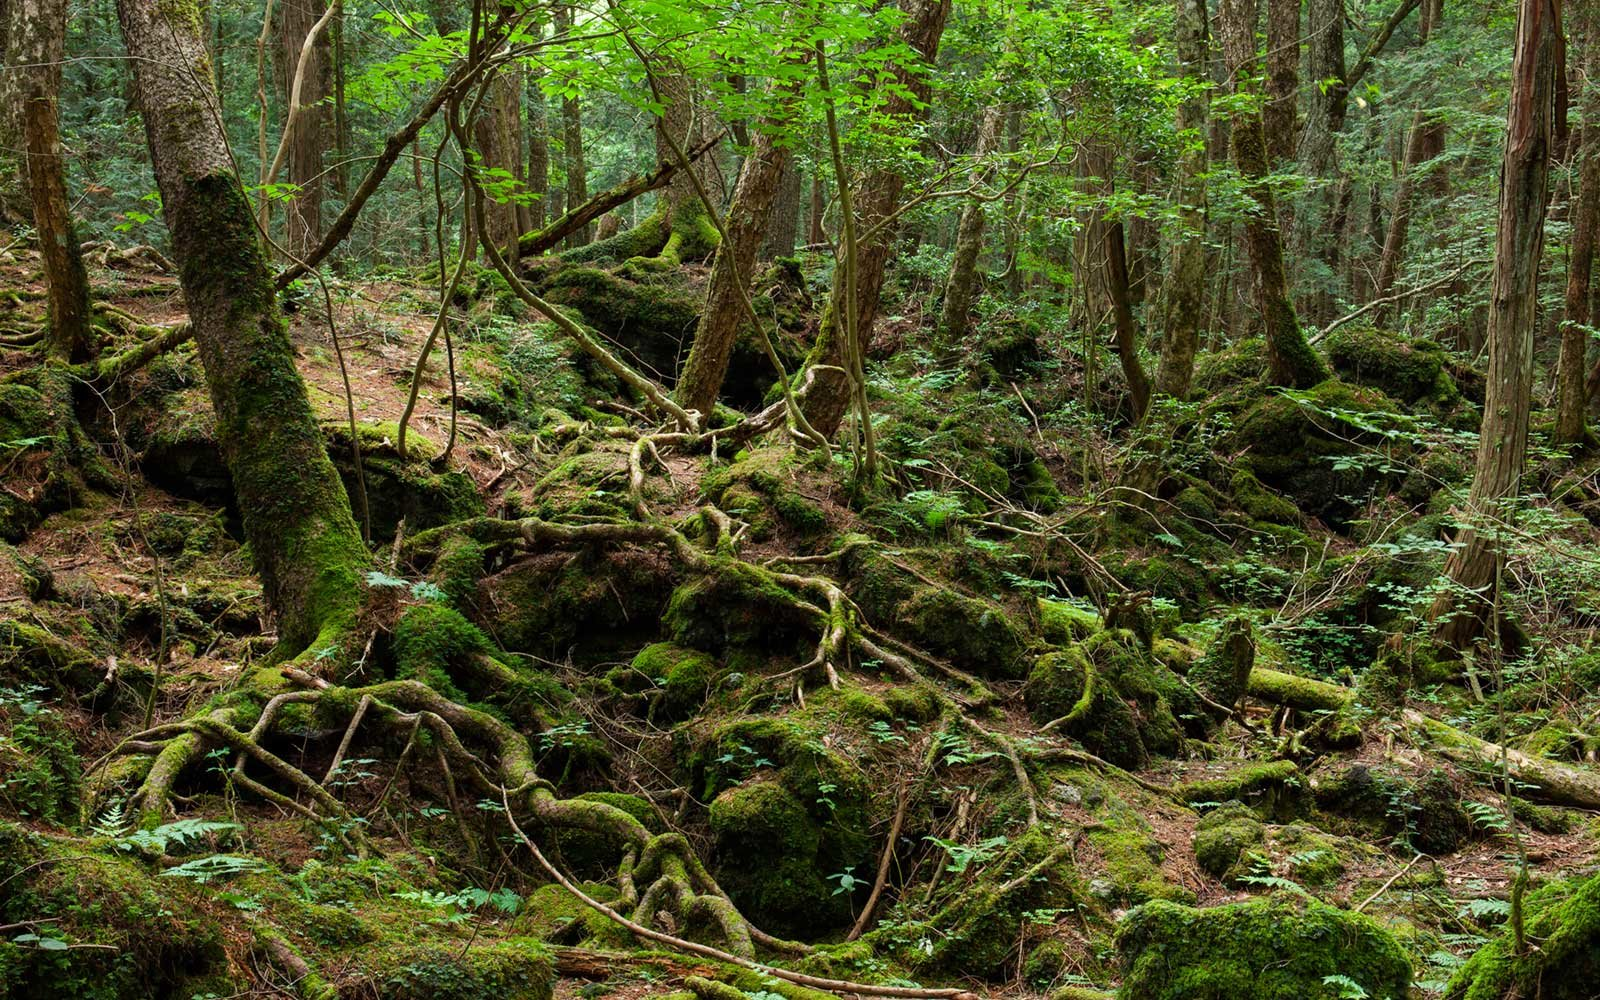 Aokigahara Forest in Japan